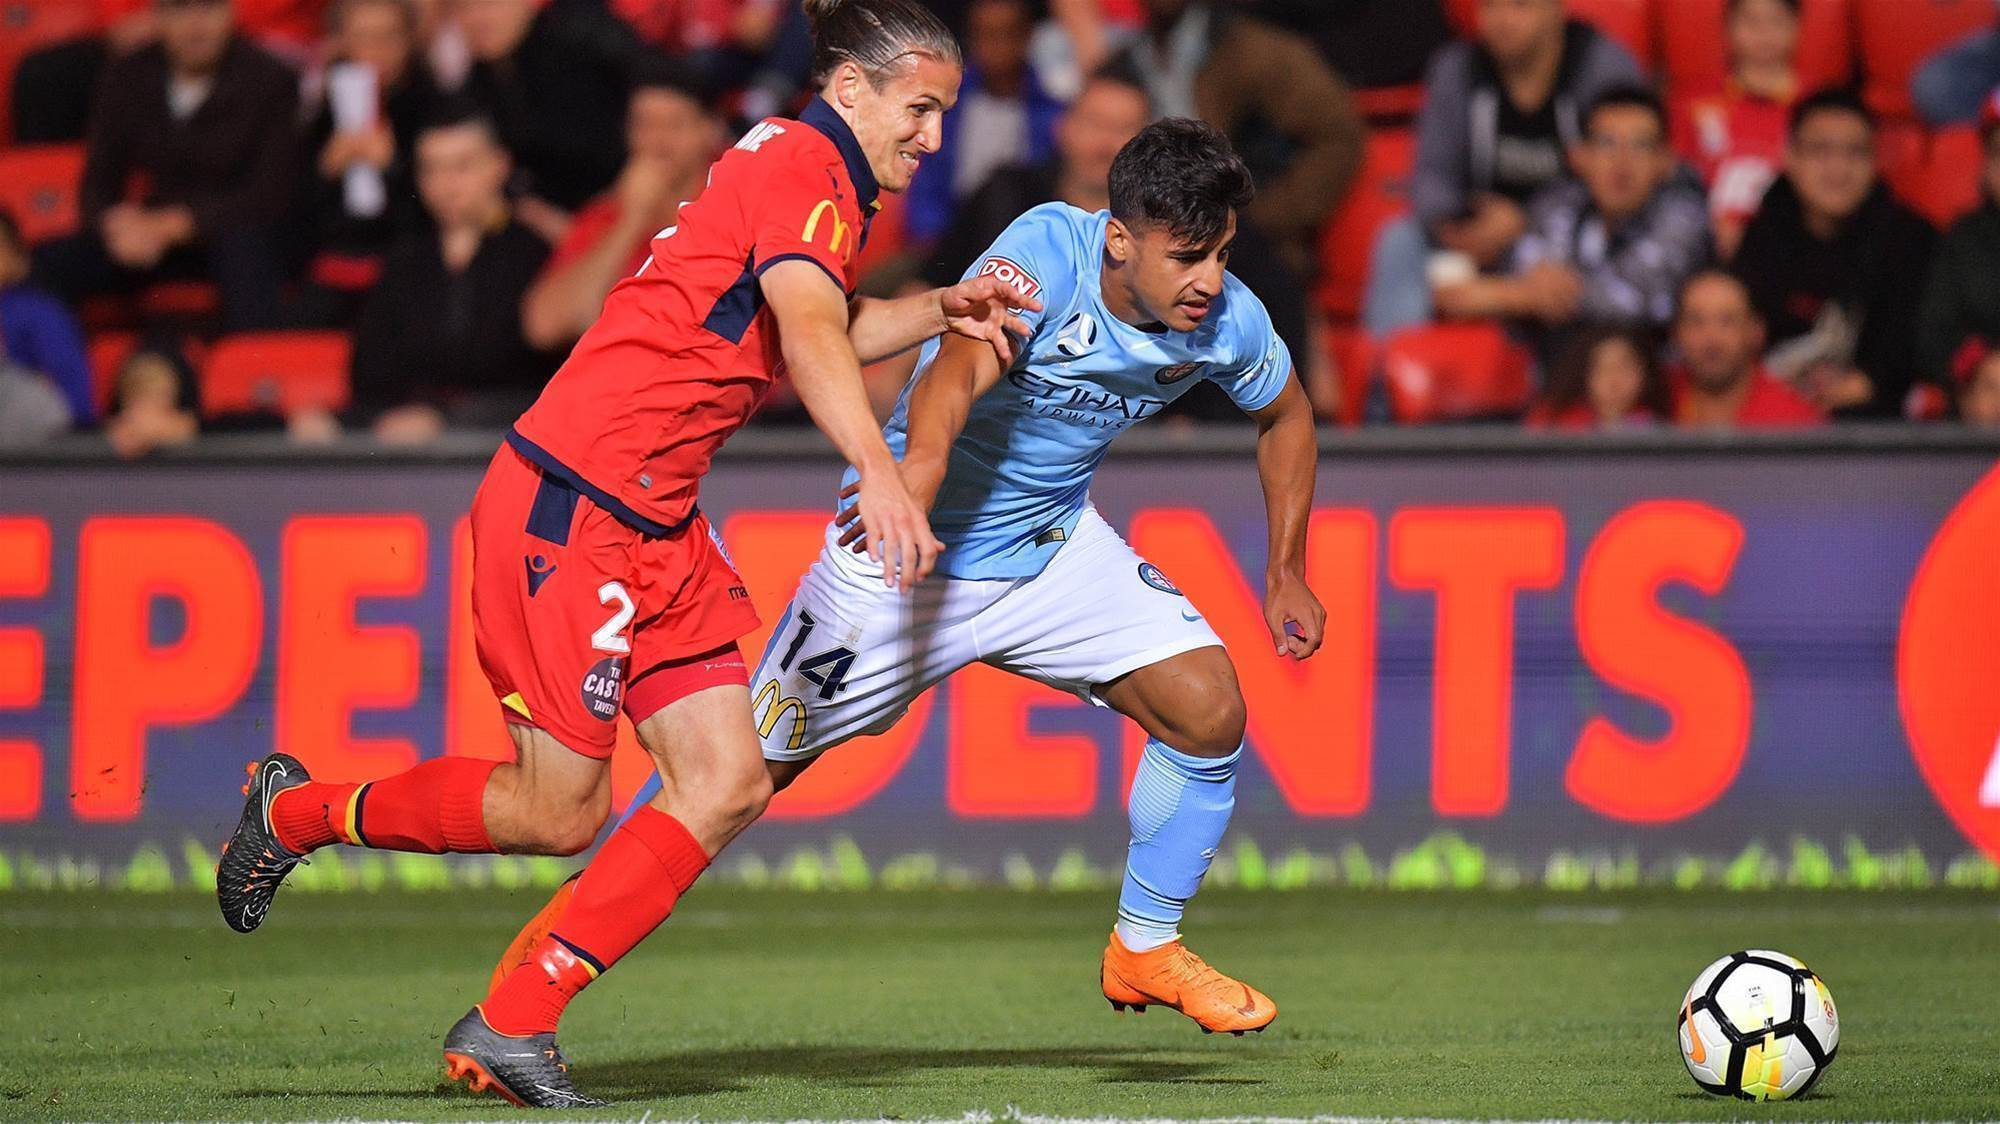 Brattan's advice to Arzani: Keep your feet on the ground